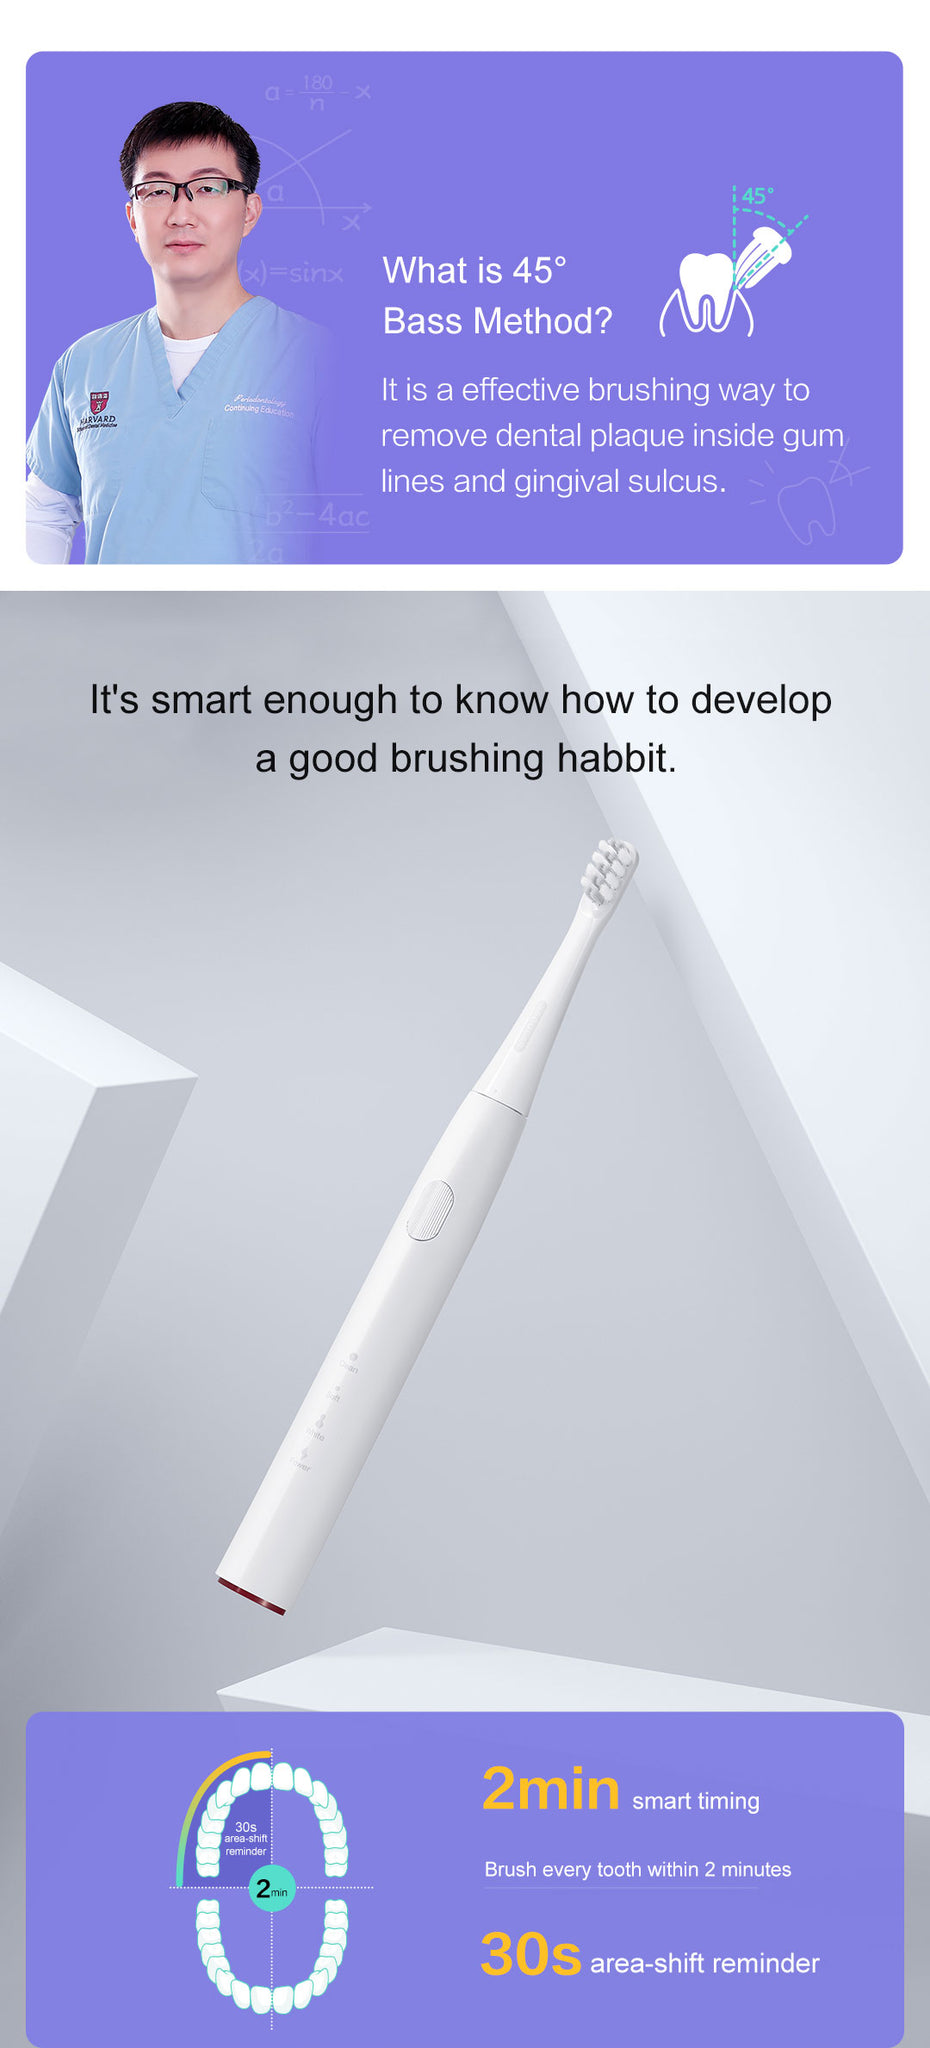 electric toothbrush dental health dental caries oral care oral health care oral health center oral hygiene oral health journal oral health education oral cancer  Xiaomi Youpin Classic DR Bei Gy1 red white electric toothbrush